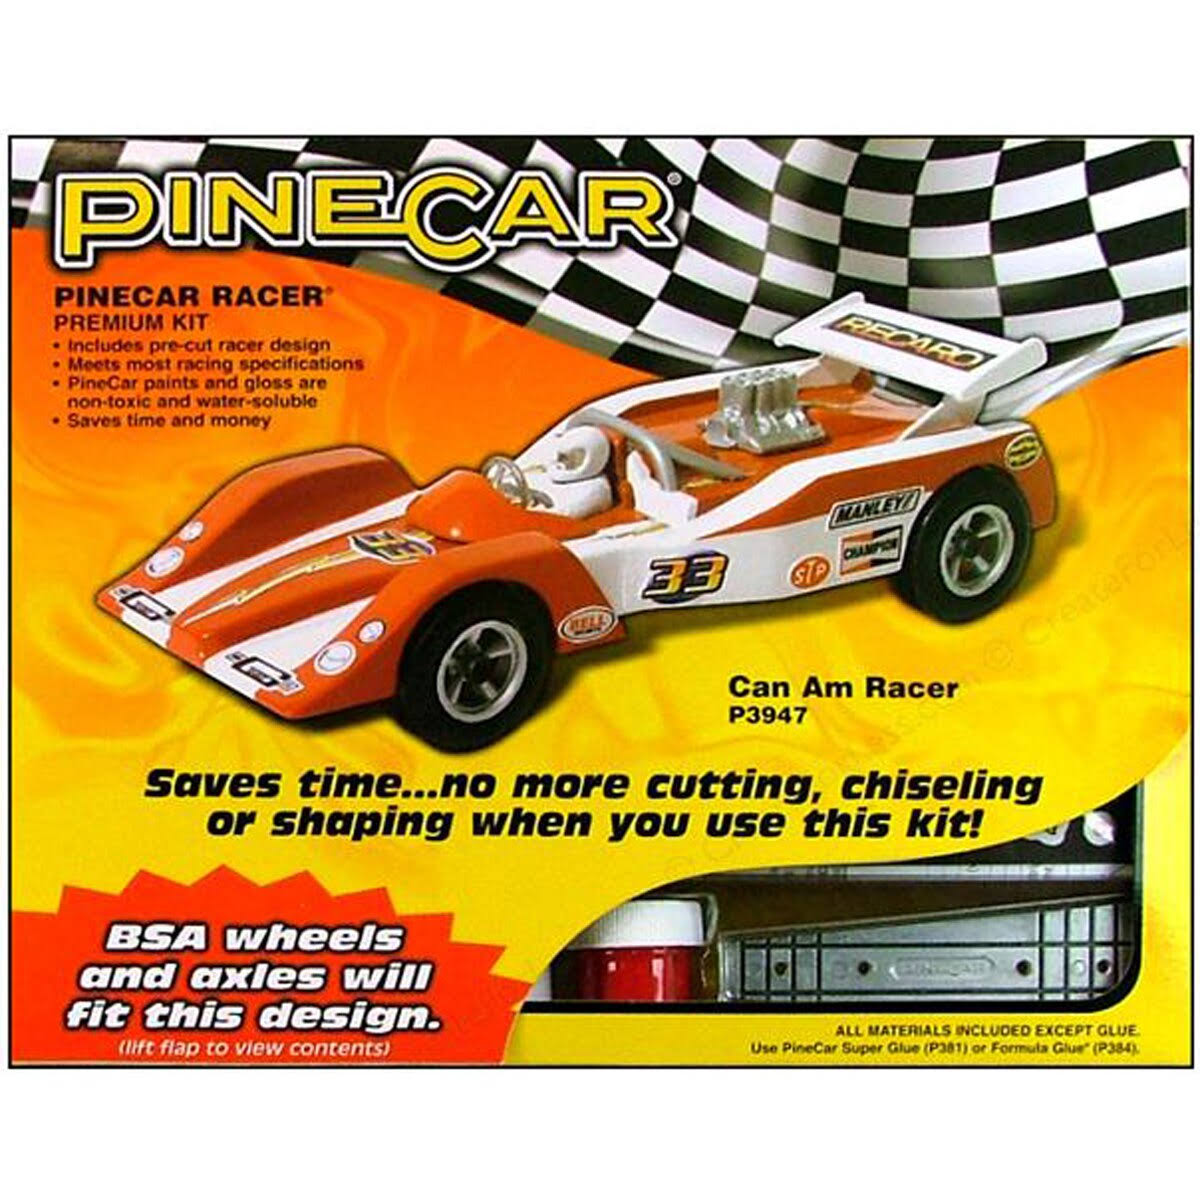 Pinecar P3947 Premium Can Am Racer Car Kit